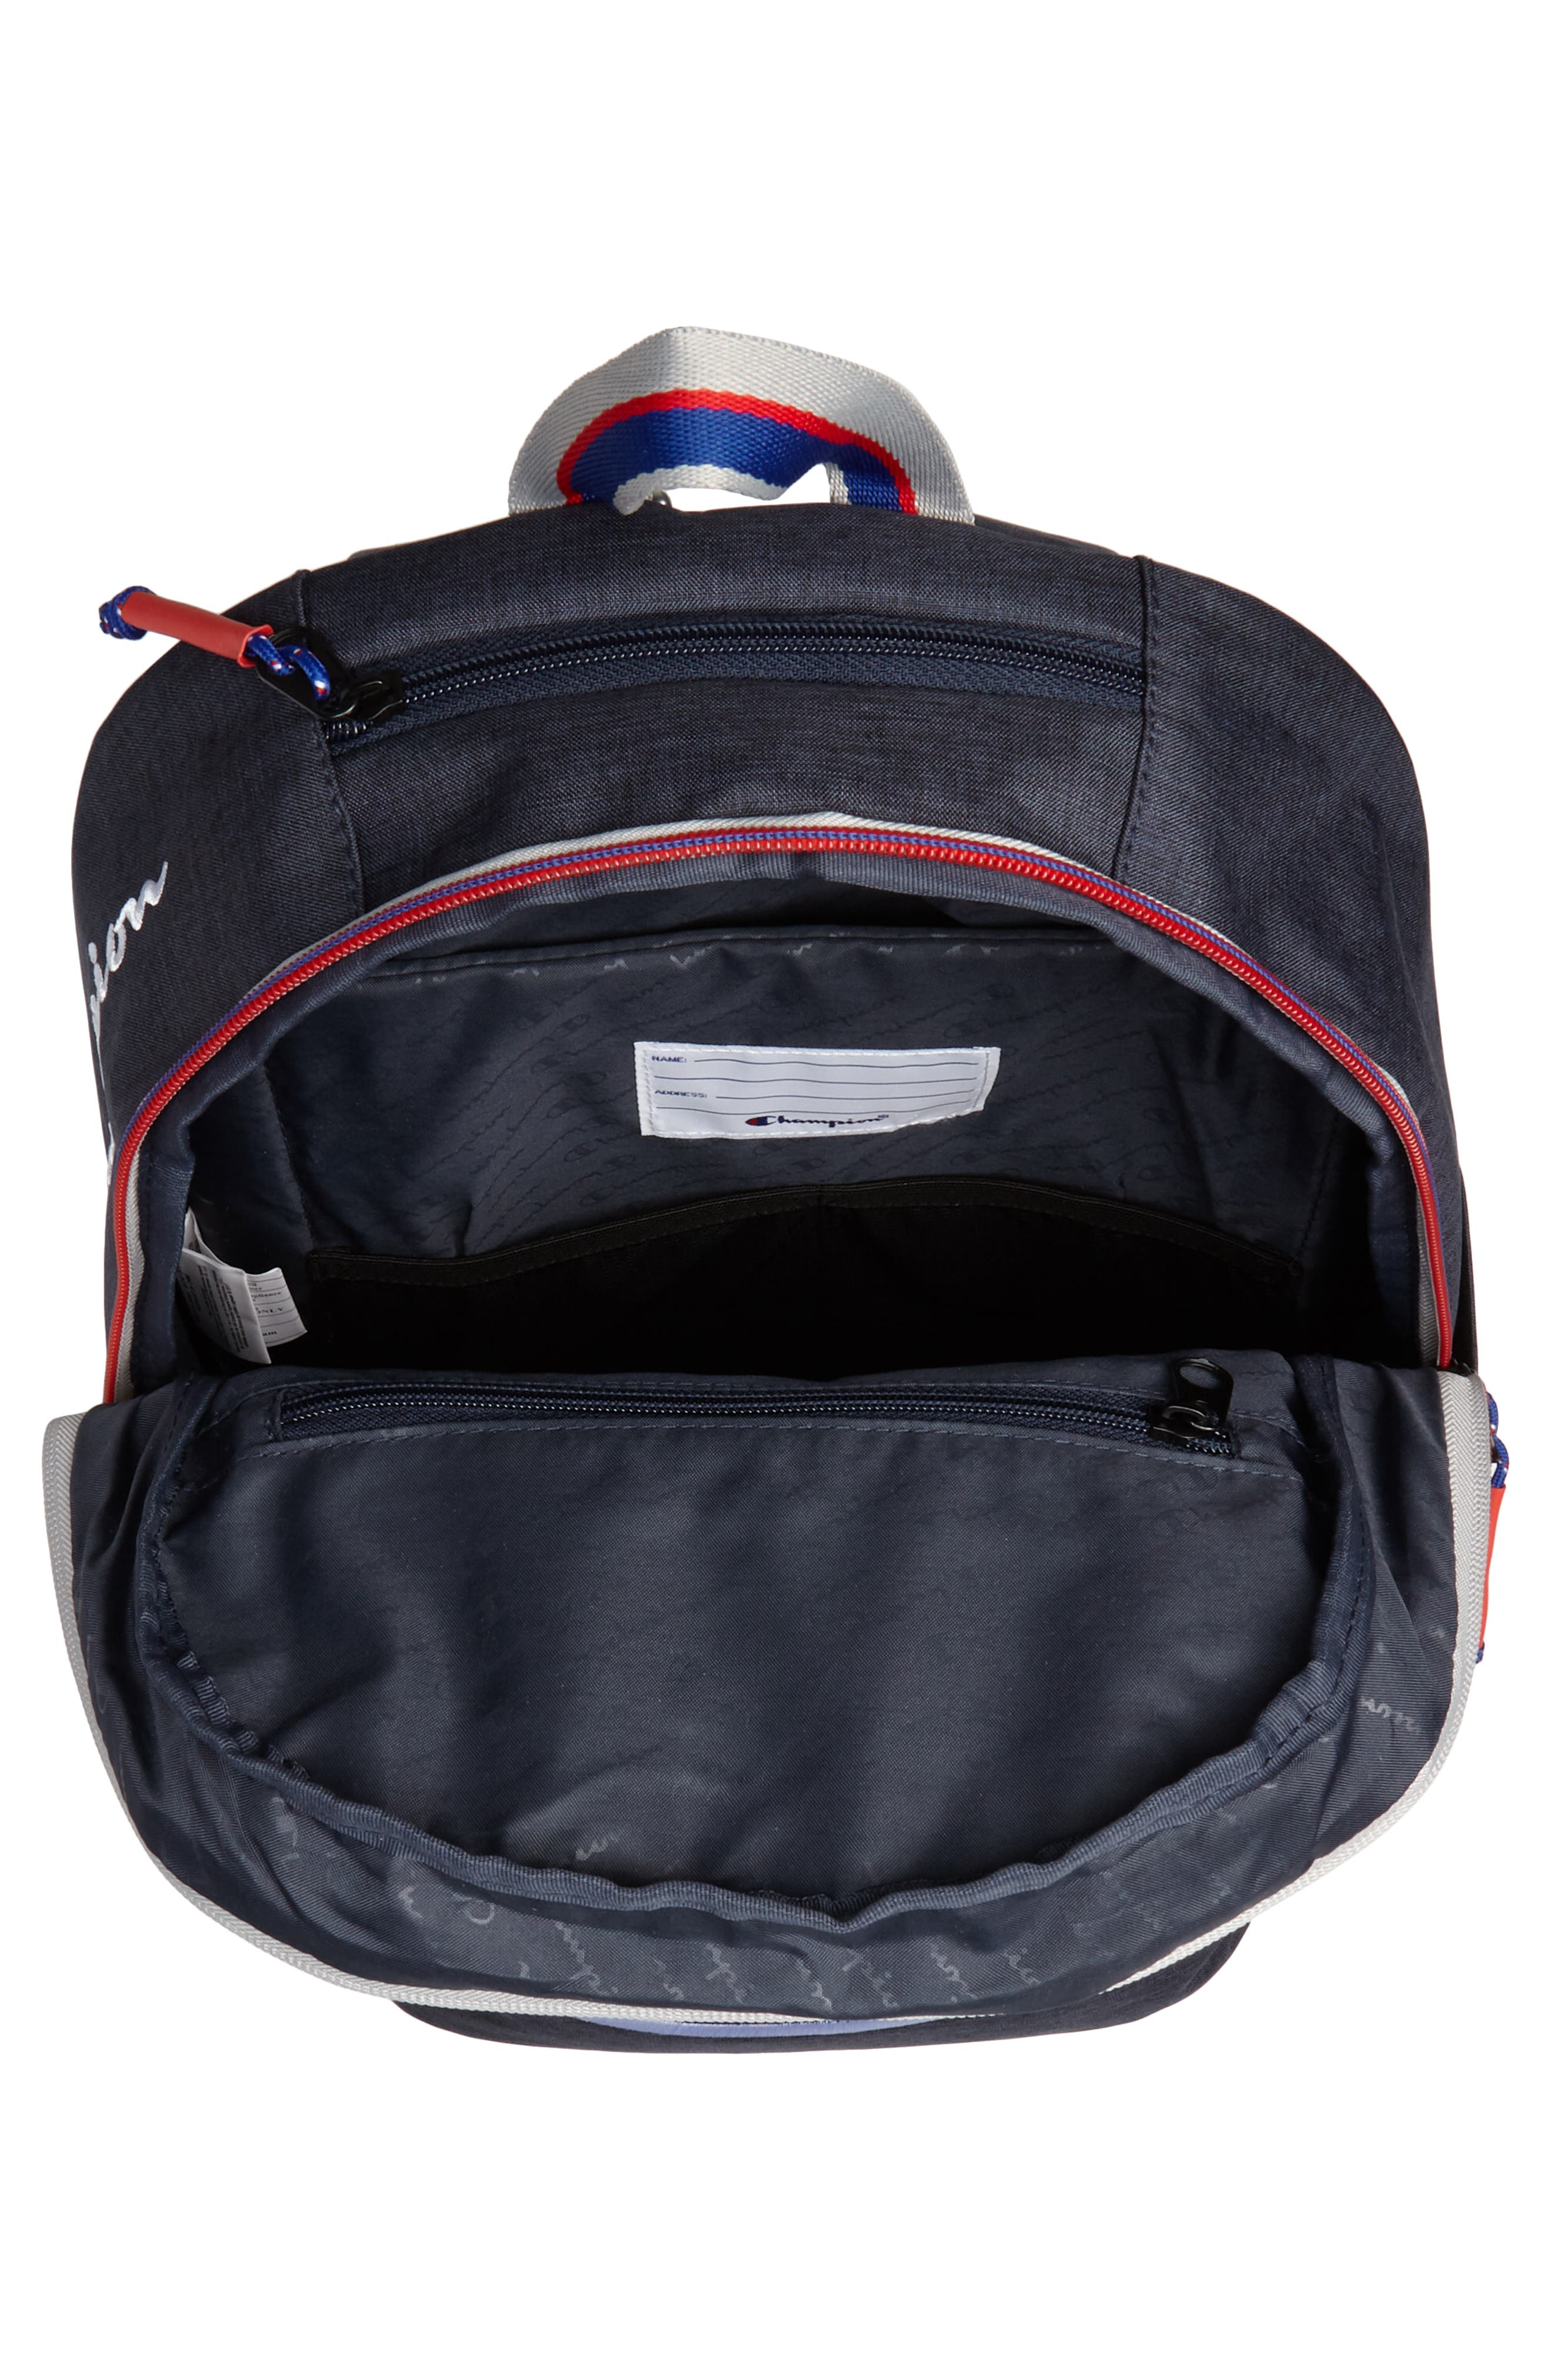 Supercize Backpack,                             Alternate thumbnail 4, color,                             Navy Heather